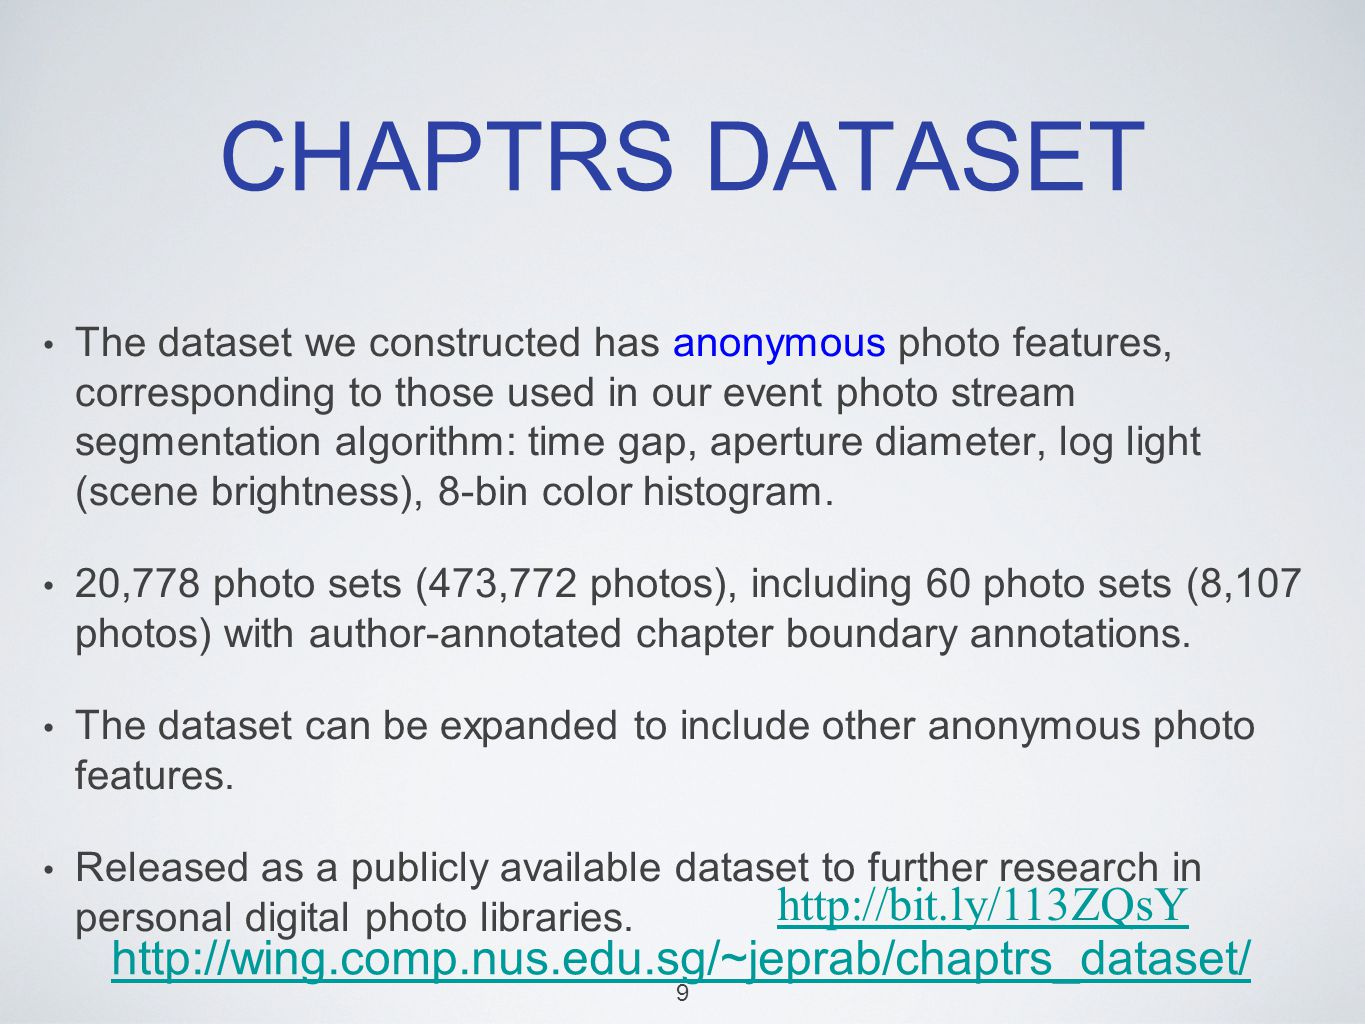 CHAPTRS DATASET The dataset we constructed has anonymous photo features, corresponding to those used in our event photo stream segmentation algorithm: time gap, aperture diameter, log light (scene brightness), 8-bin color histogram.